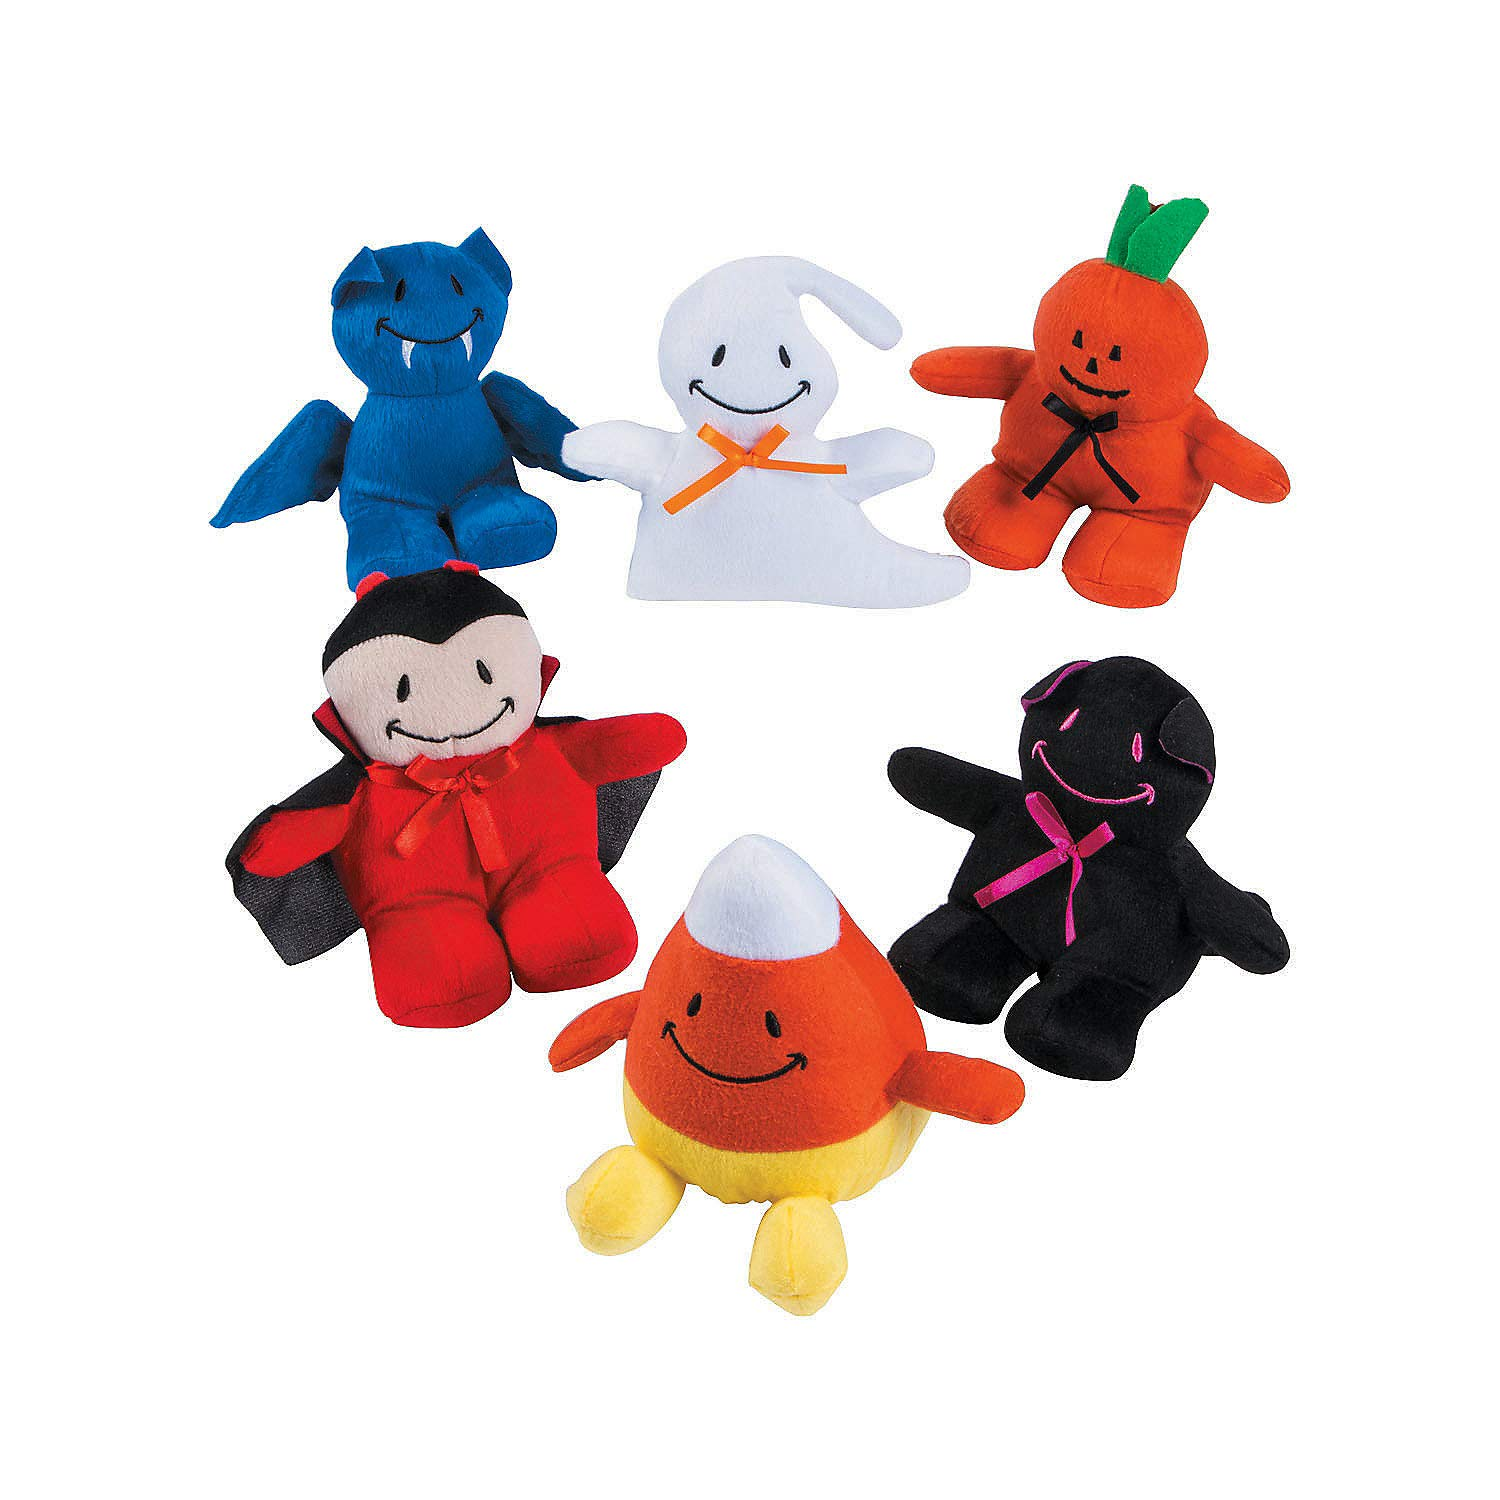 Fun Express - Smile Face Monster Plush Assortment for Halloween - Toys - Plush - Bean Bag Animals - Halloween - 12 Pieces by Fun Express